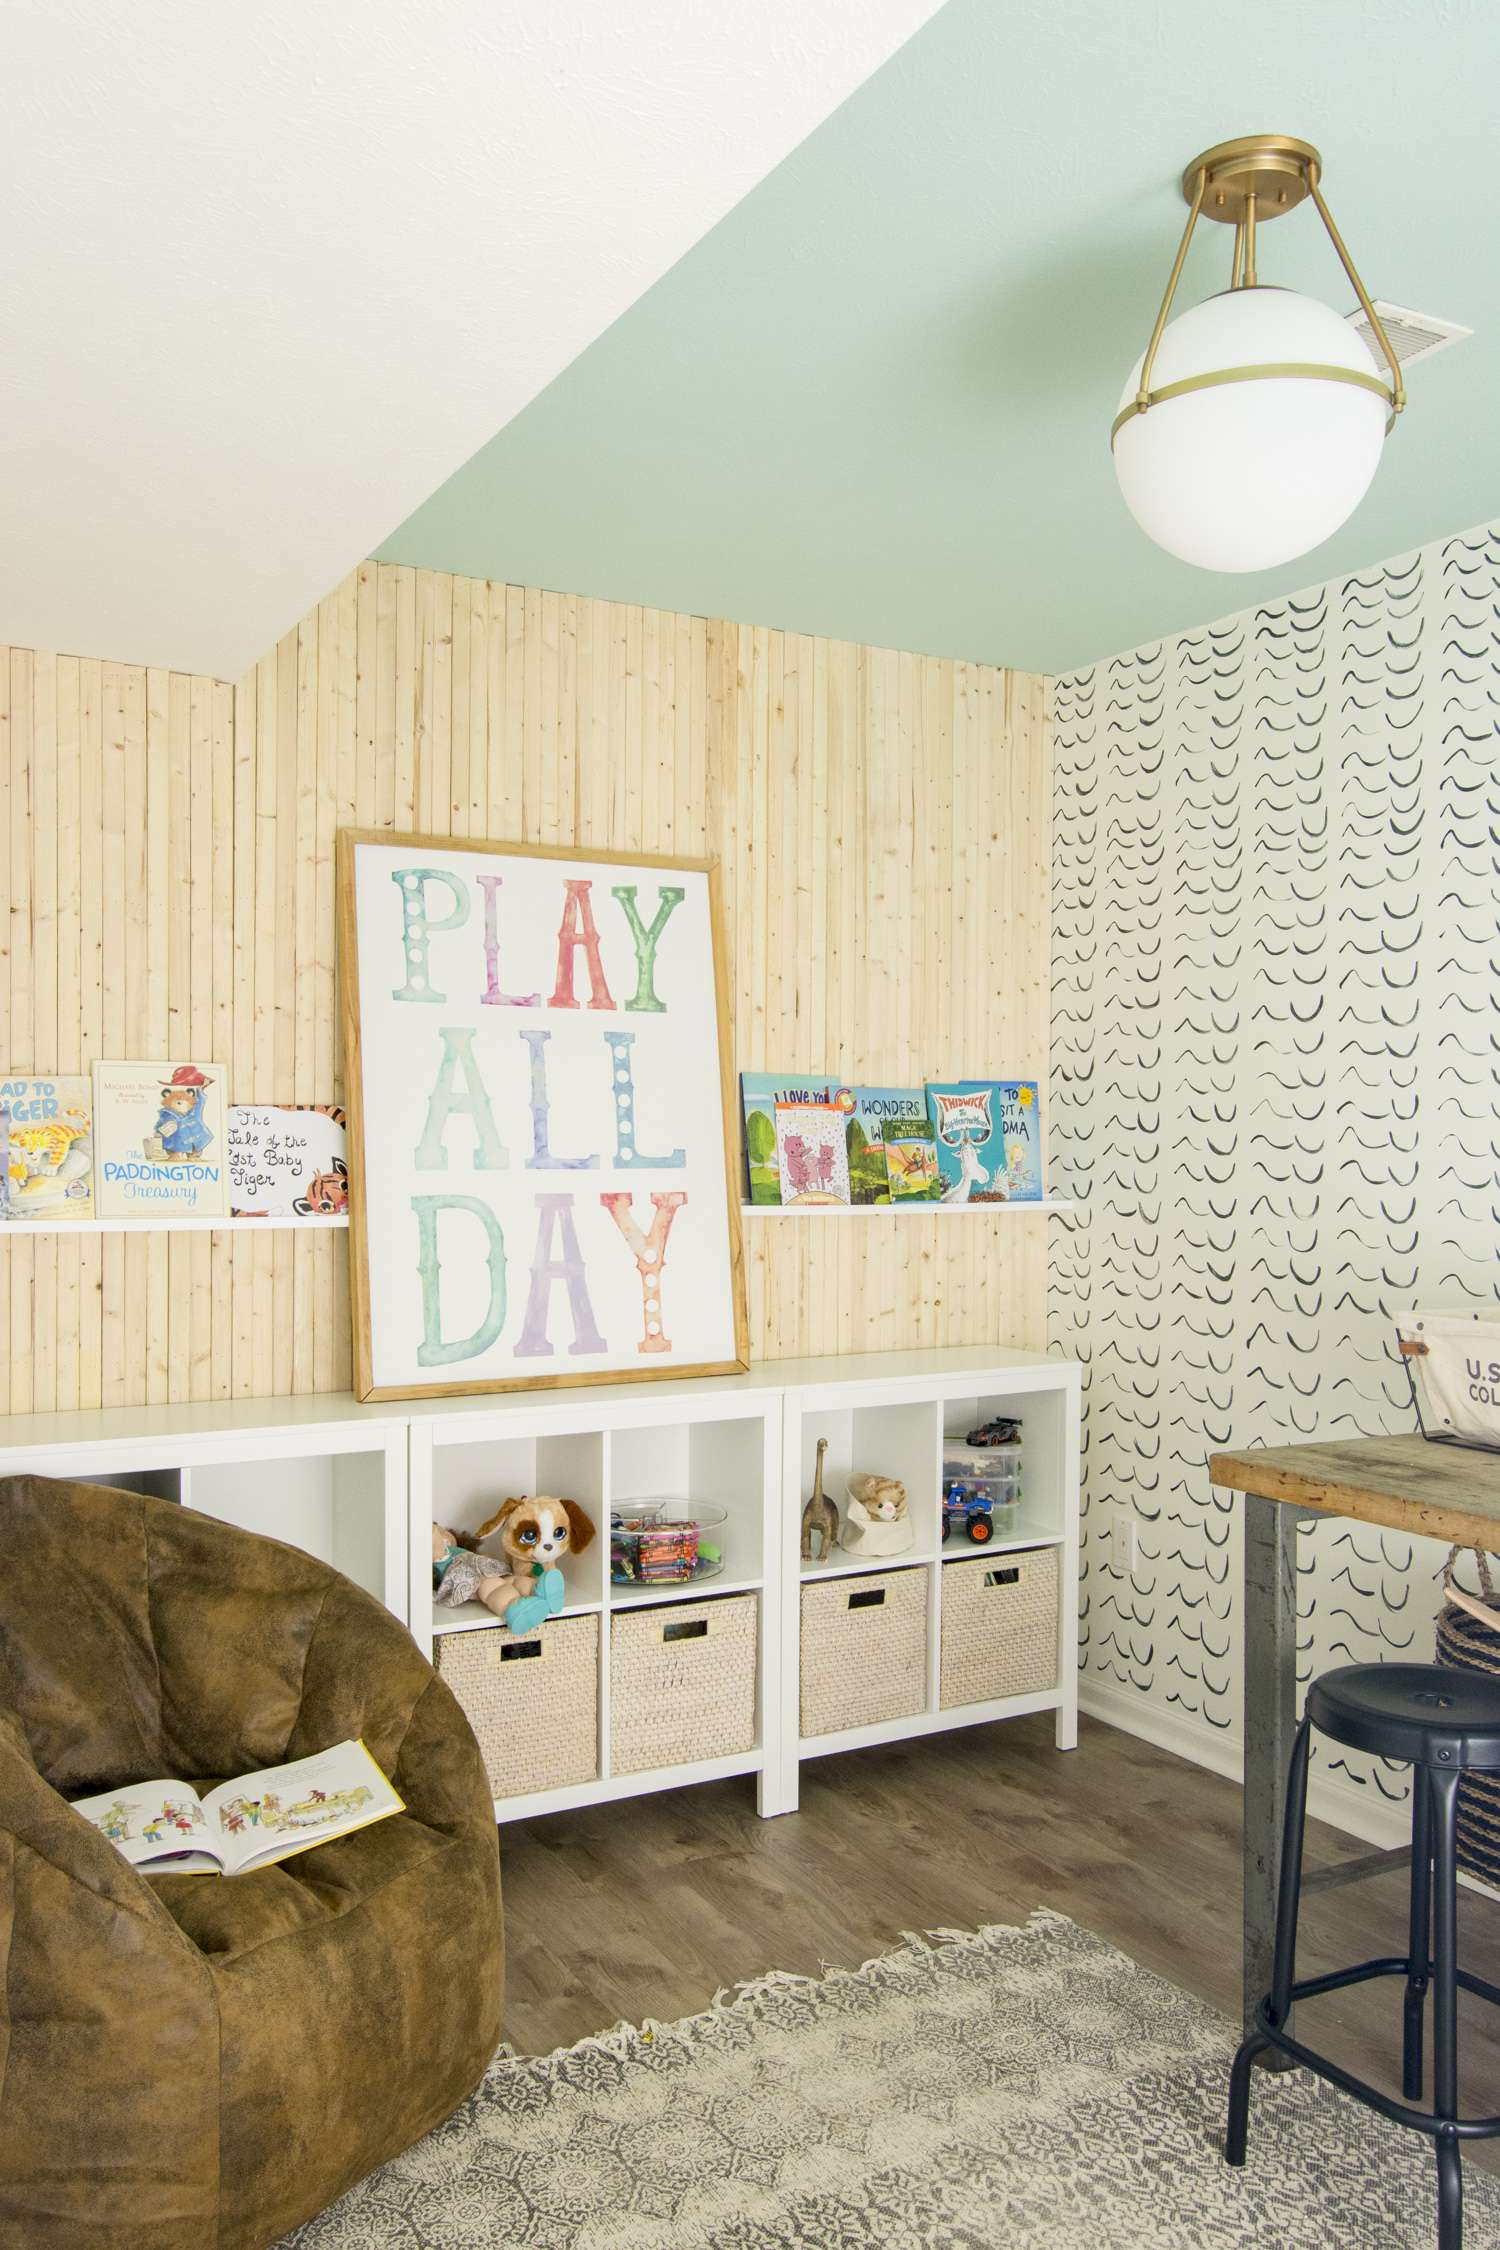 Kid's playroom organization and storage.